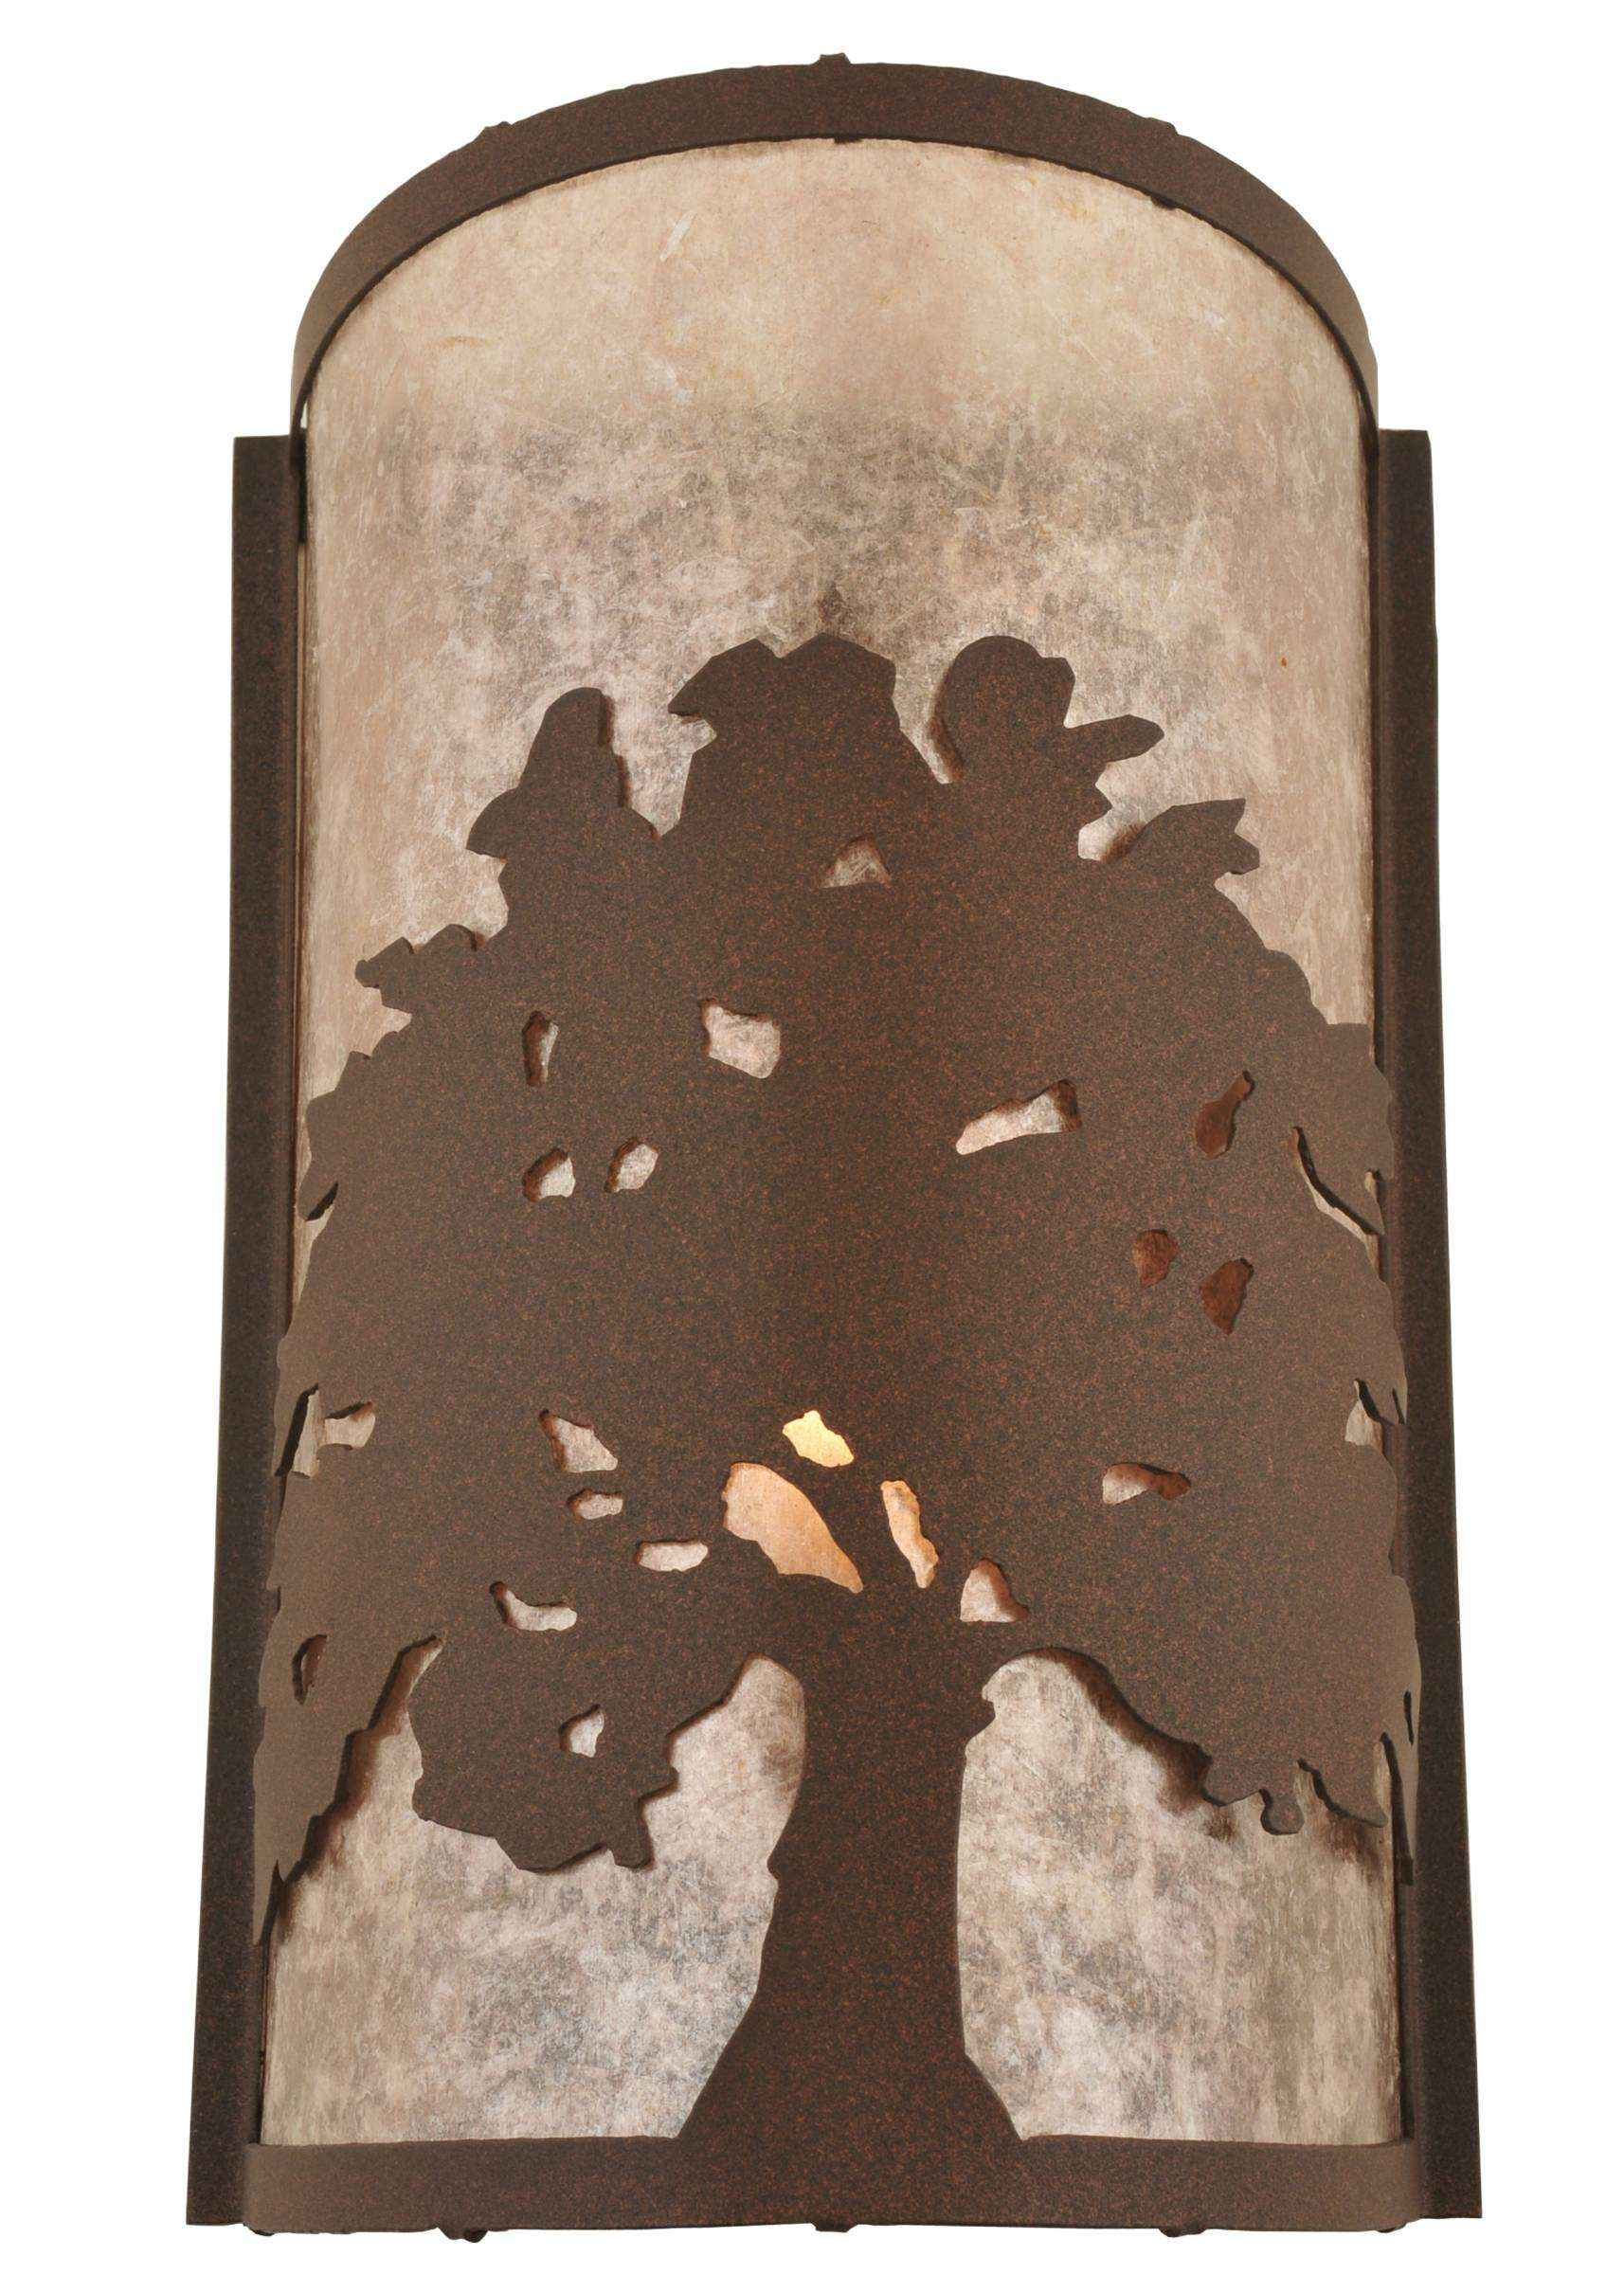 Meyda Tiffany 118535 Oak Tree Wall Sconce in Cafe Noir finish with Silver Mica